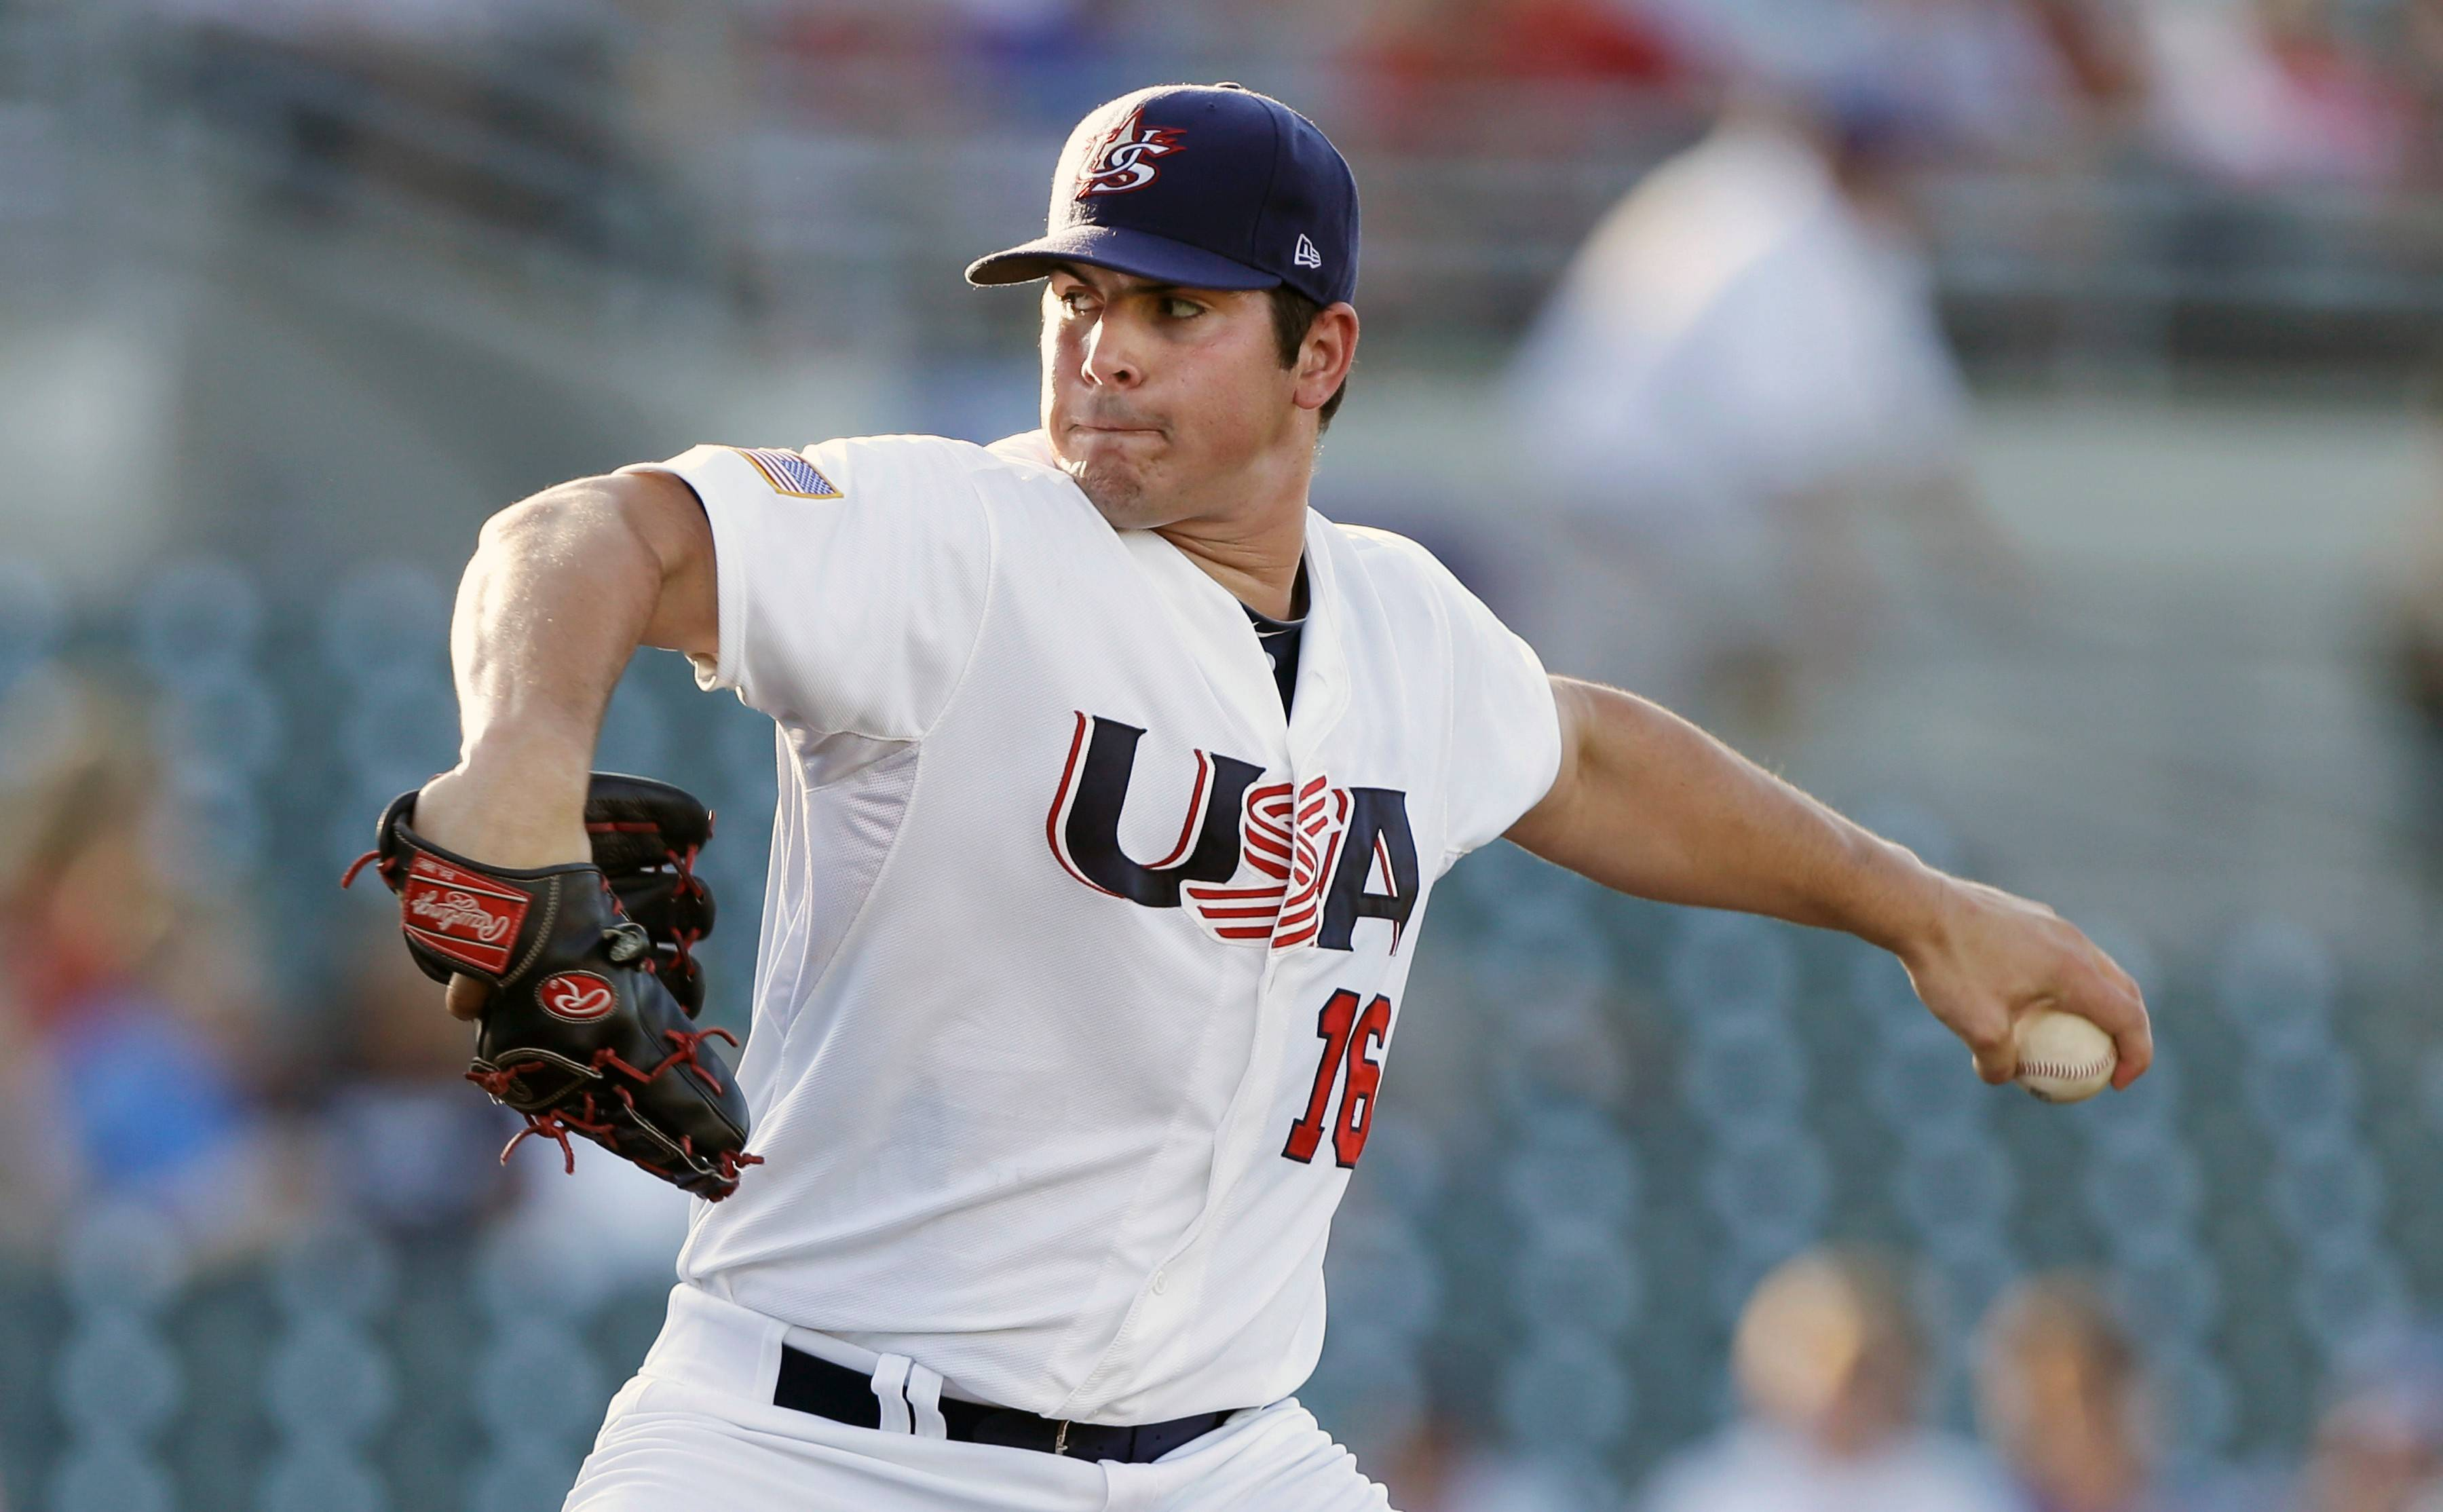 Carlos Rodon, here pitching for Team USA last summer in an exhibition game against Cuba, is expected to be the first pick in next month's baseball draft.